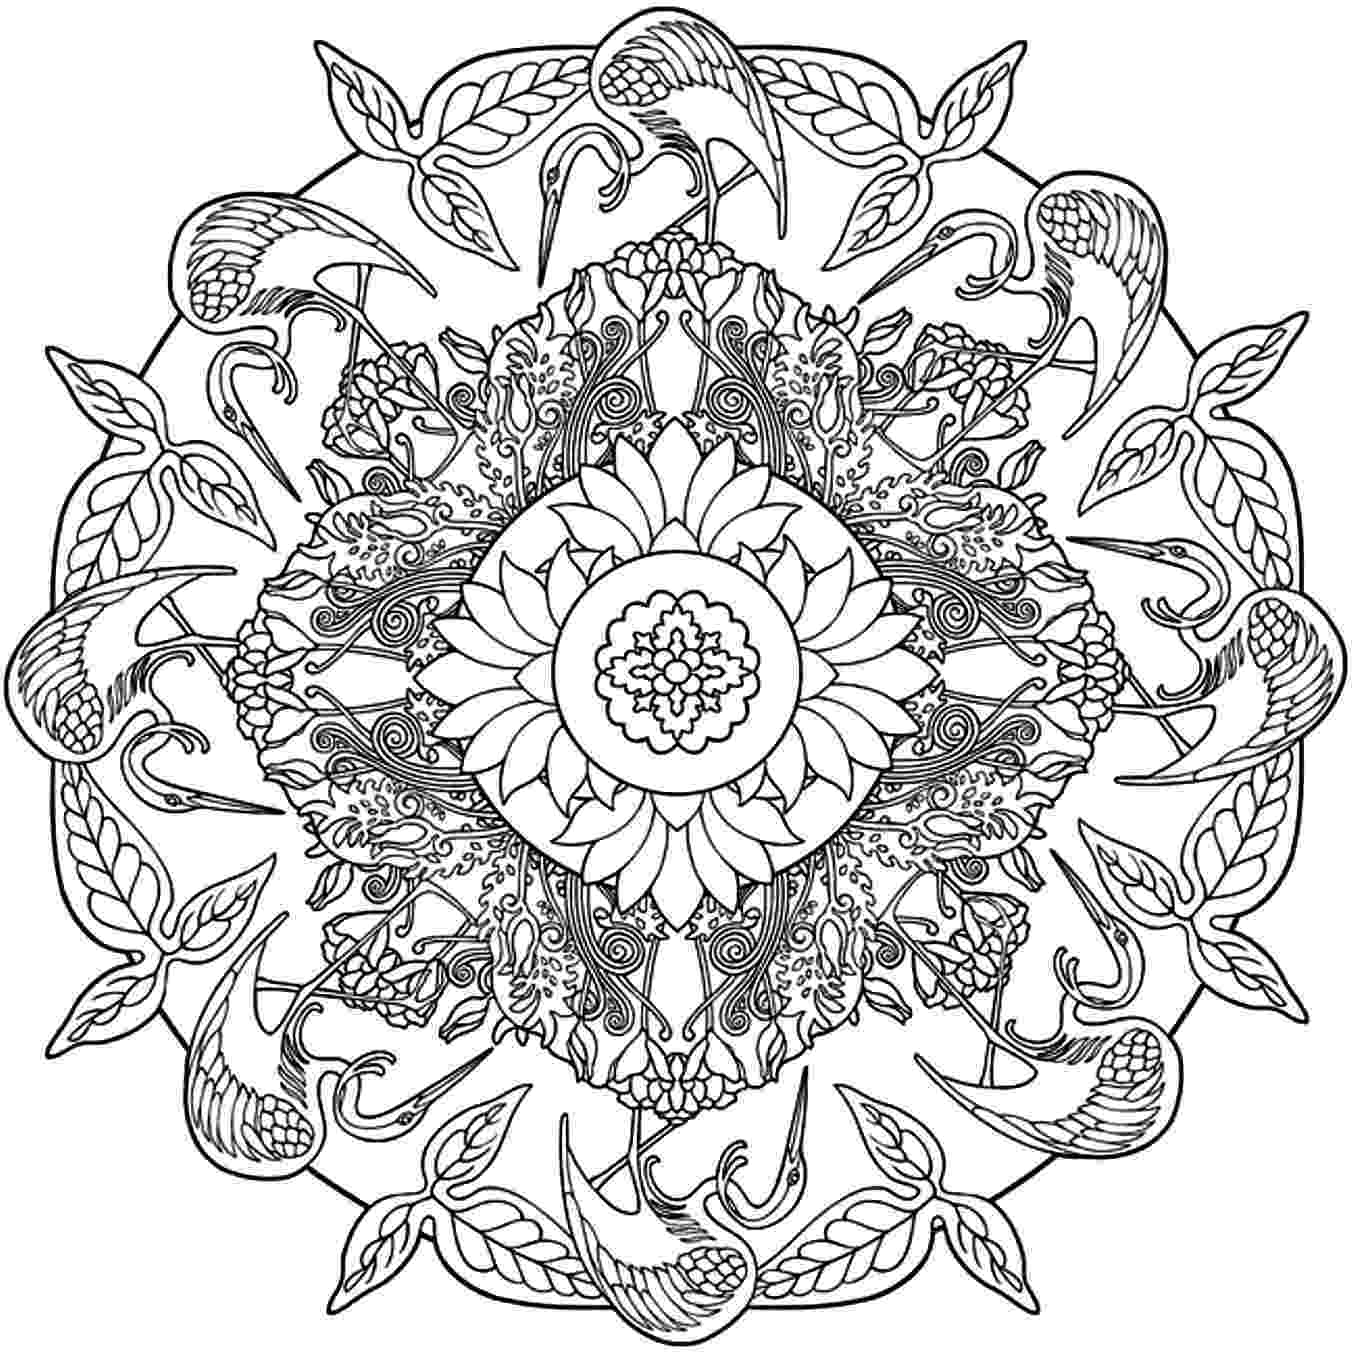 nature coloring pages for adults beauty and nature edward ramos 5 anti stress adult nature pages coloring adults for